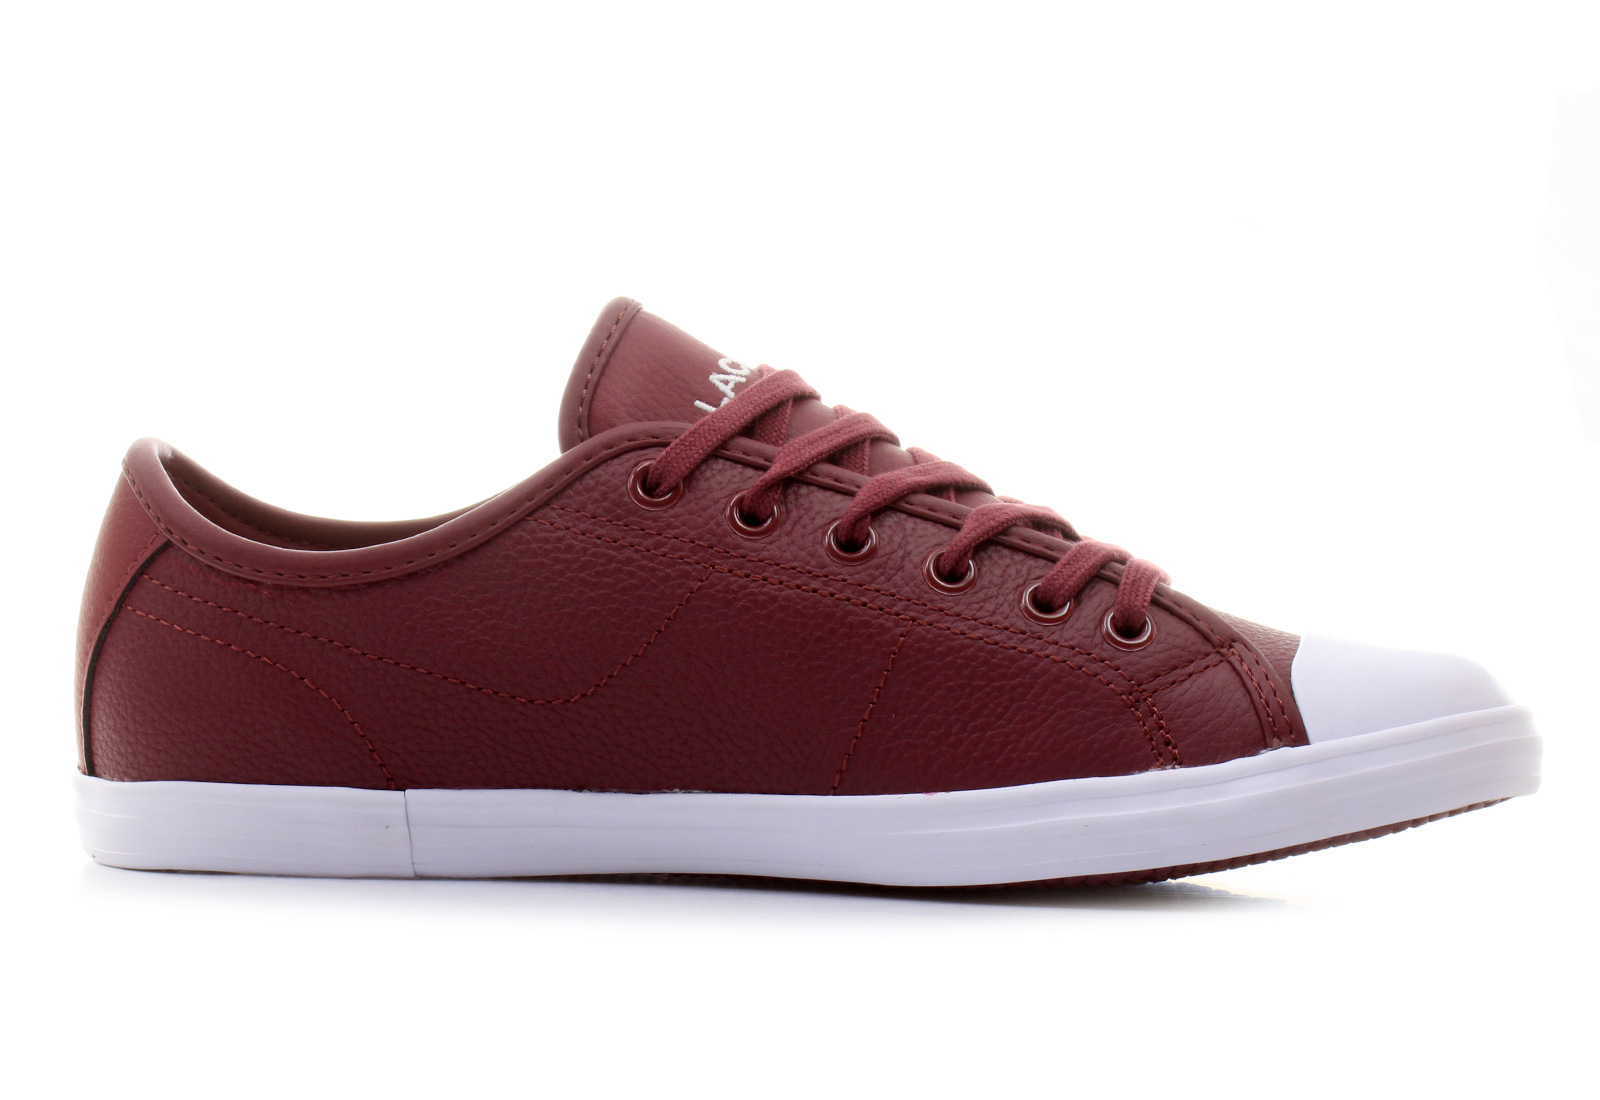 d4f2a9919 Lacoste Sneakers - Ziane Sneaker Leather - 151spw1046-dr2 - Online ...